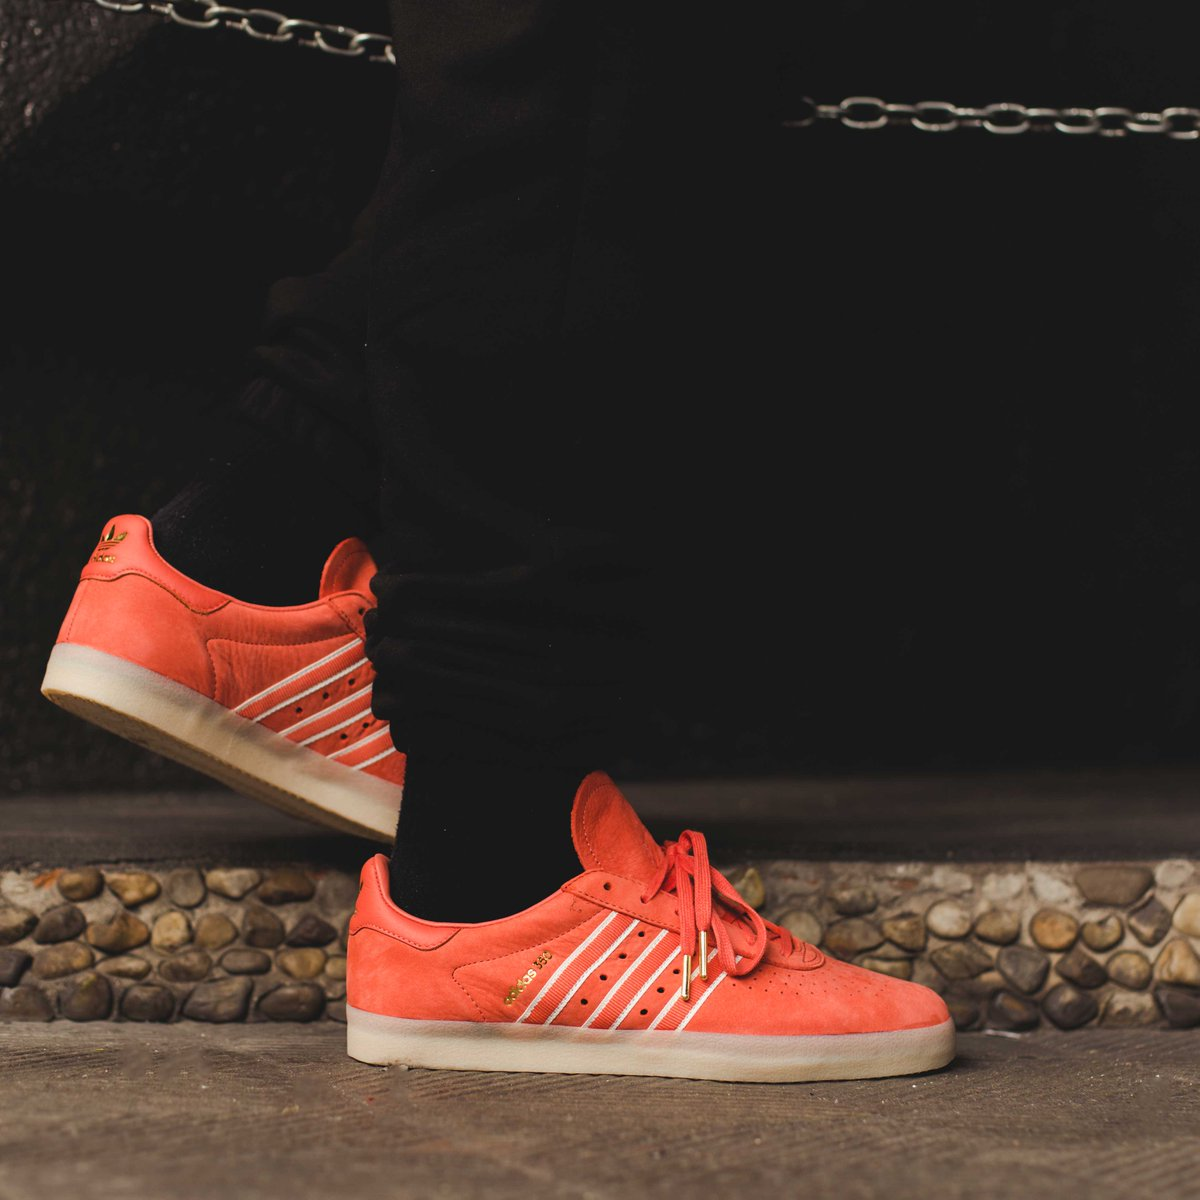 official photos f30d2 16d8b You traveling adidas x Oyster Holdings 350 in Trace Scarlet with gold foil  branding. In store  online httpow.lynVW030jInpO ⠀⠀⠀⠀ adidasoriginals  ...